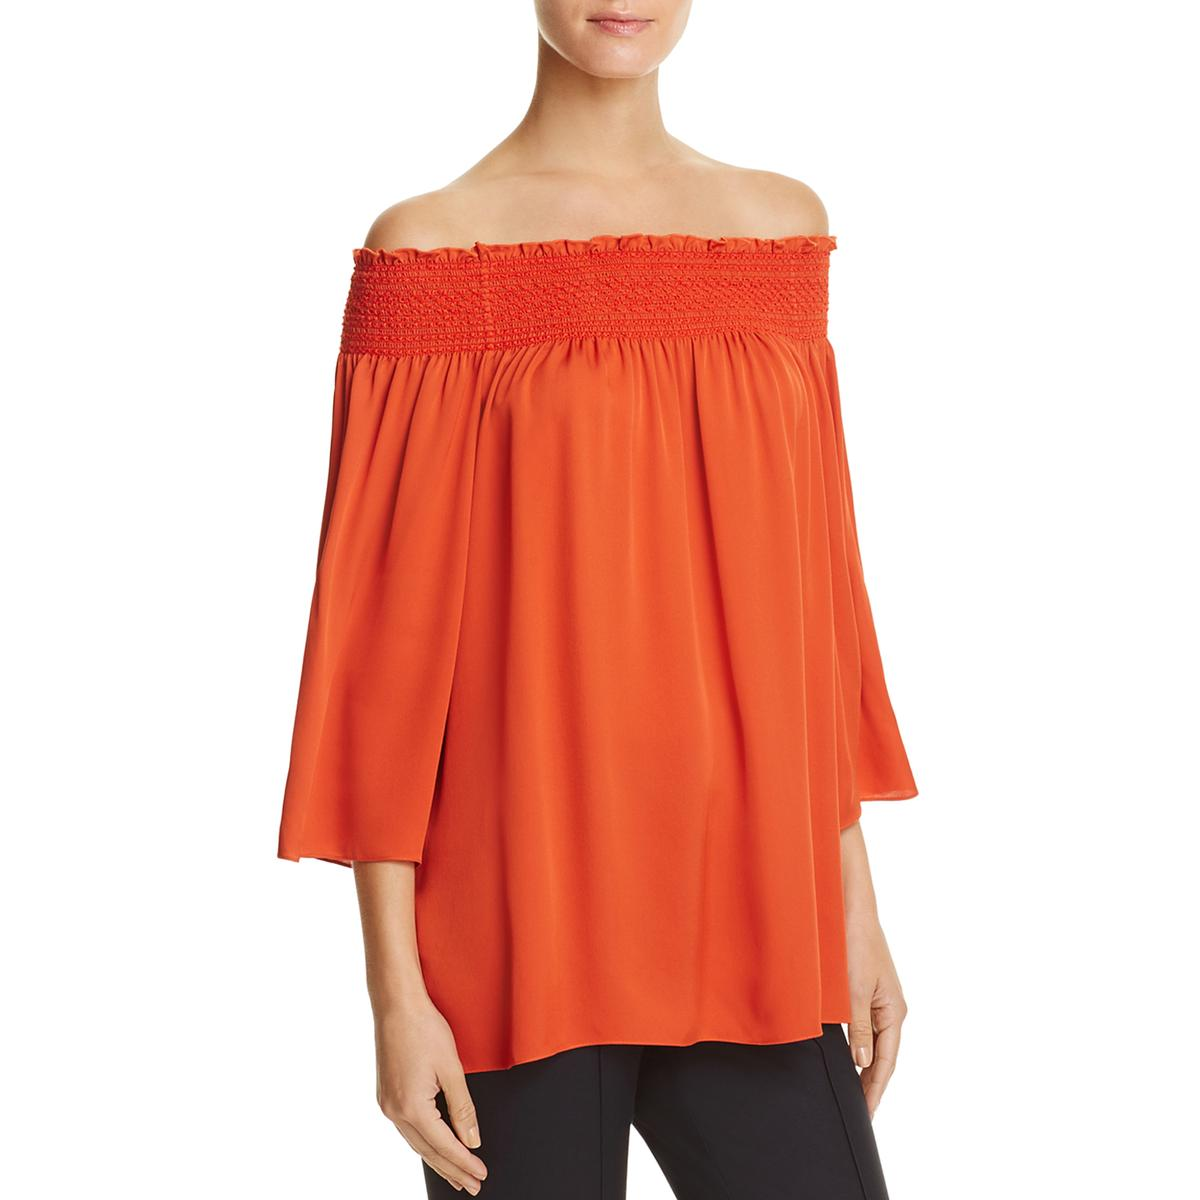 Theory Woman Smocked Off-the-shoulder Silk Off-the-shoulder Smocked Silk Top Peach Size S Theory Outlet Sast JtVShU